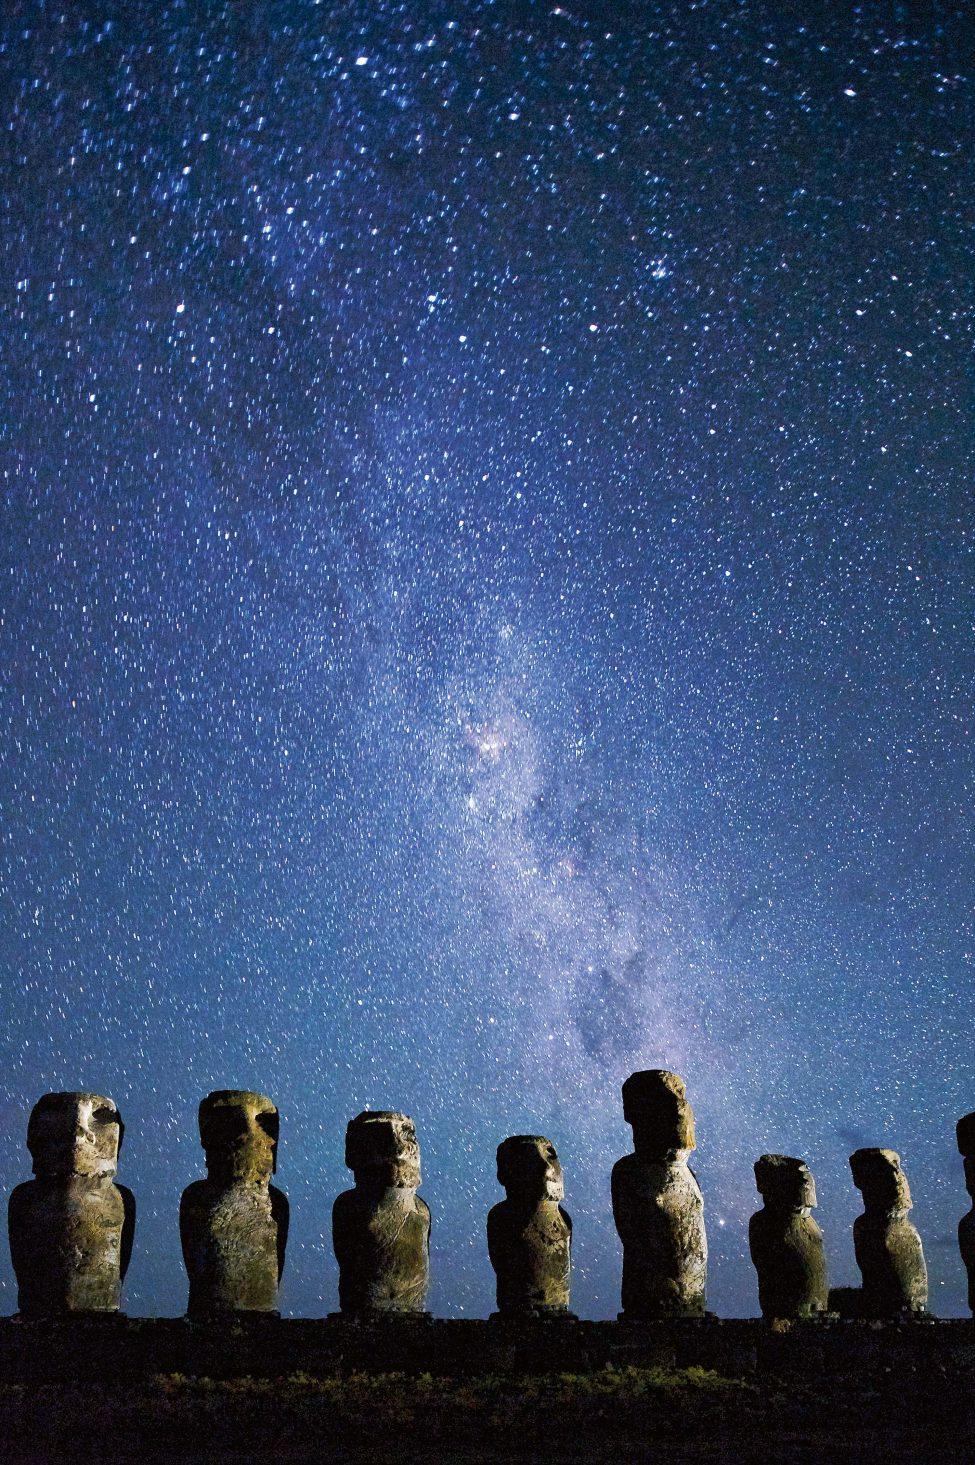 The ancient Polynesian mariners who first colonised Rapa Nui were celestial navigators, forging a route across the Pacific guided by the stars that light the night skies. Today, international flights and modern seafaring make Rapa Nui infinitely more reachable, but the region remains a challenging place for scientists to work in.<br />